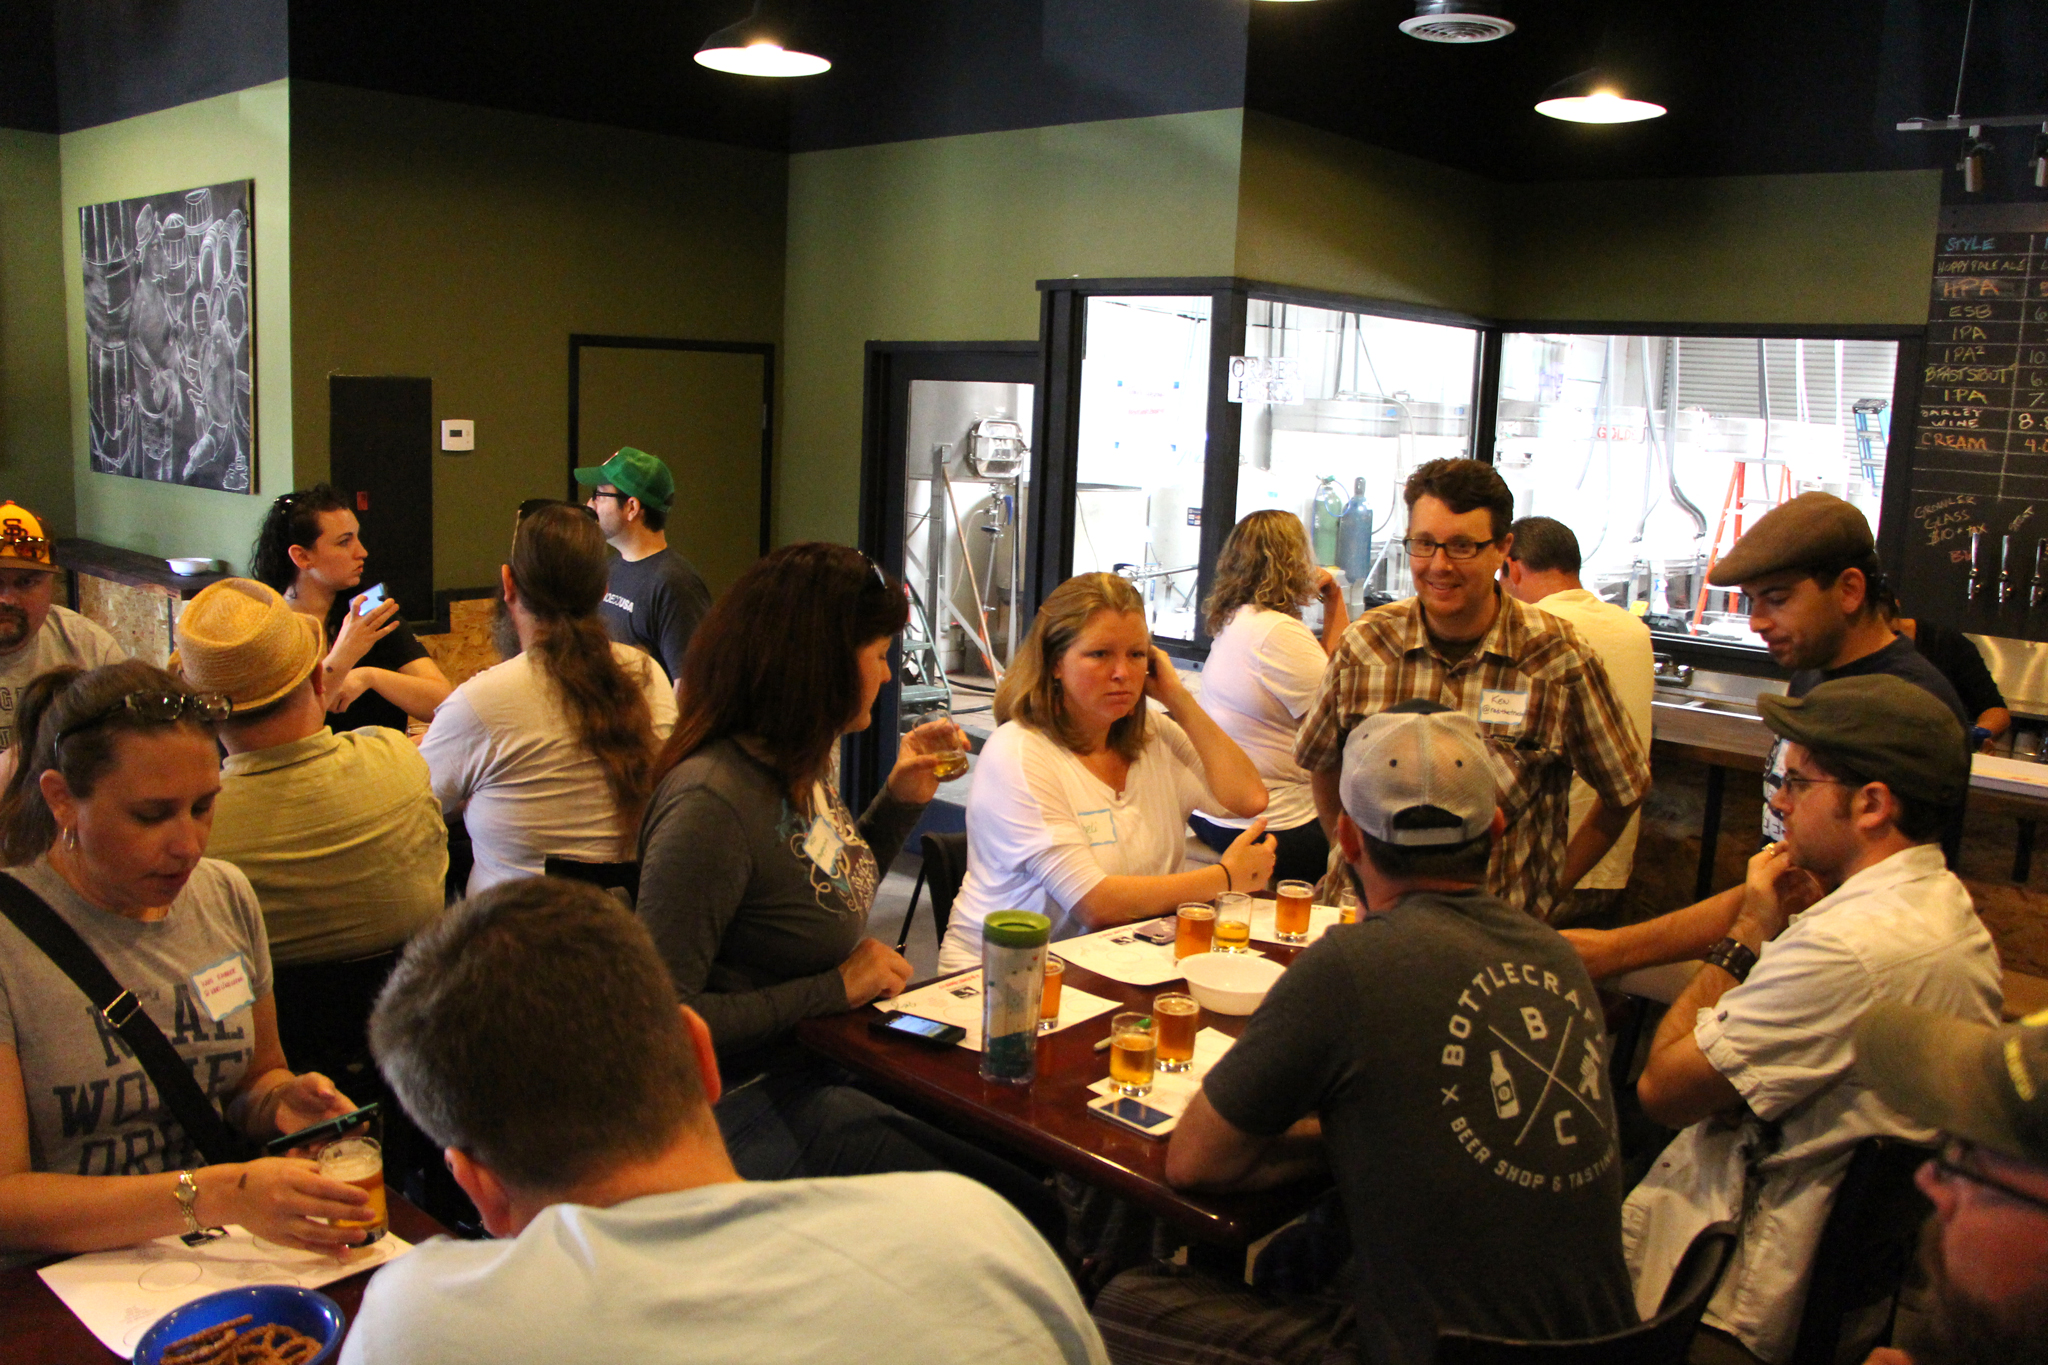 Butcher's Brewing Tasting Room - Stop #1 on the Santee Brewery Crawl